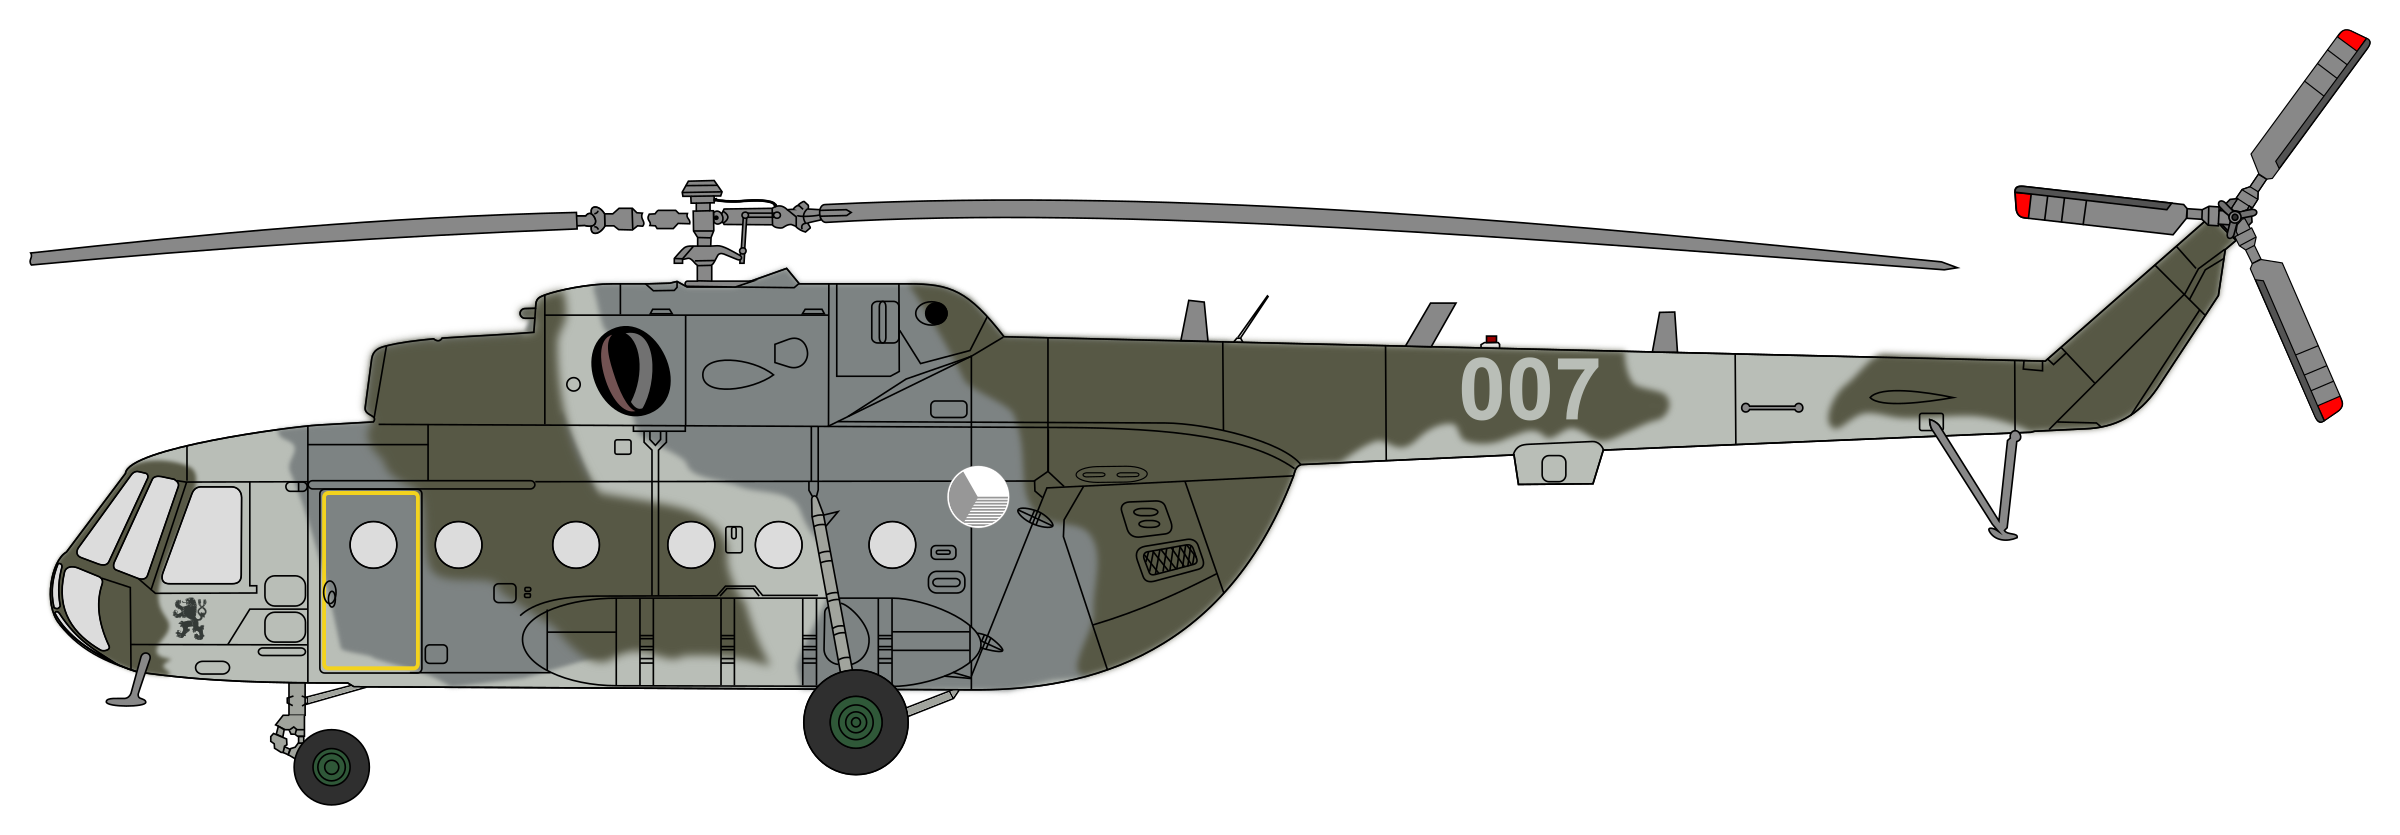 mi helicopter with Mil Mi17 Czech Air Force Camouflage on Rolls Royce Wraith For Sale 10000245 also View photo besides E Mi 1 further Mil Mi17 Czech Air Force Camouflage together with Open photo.